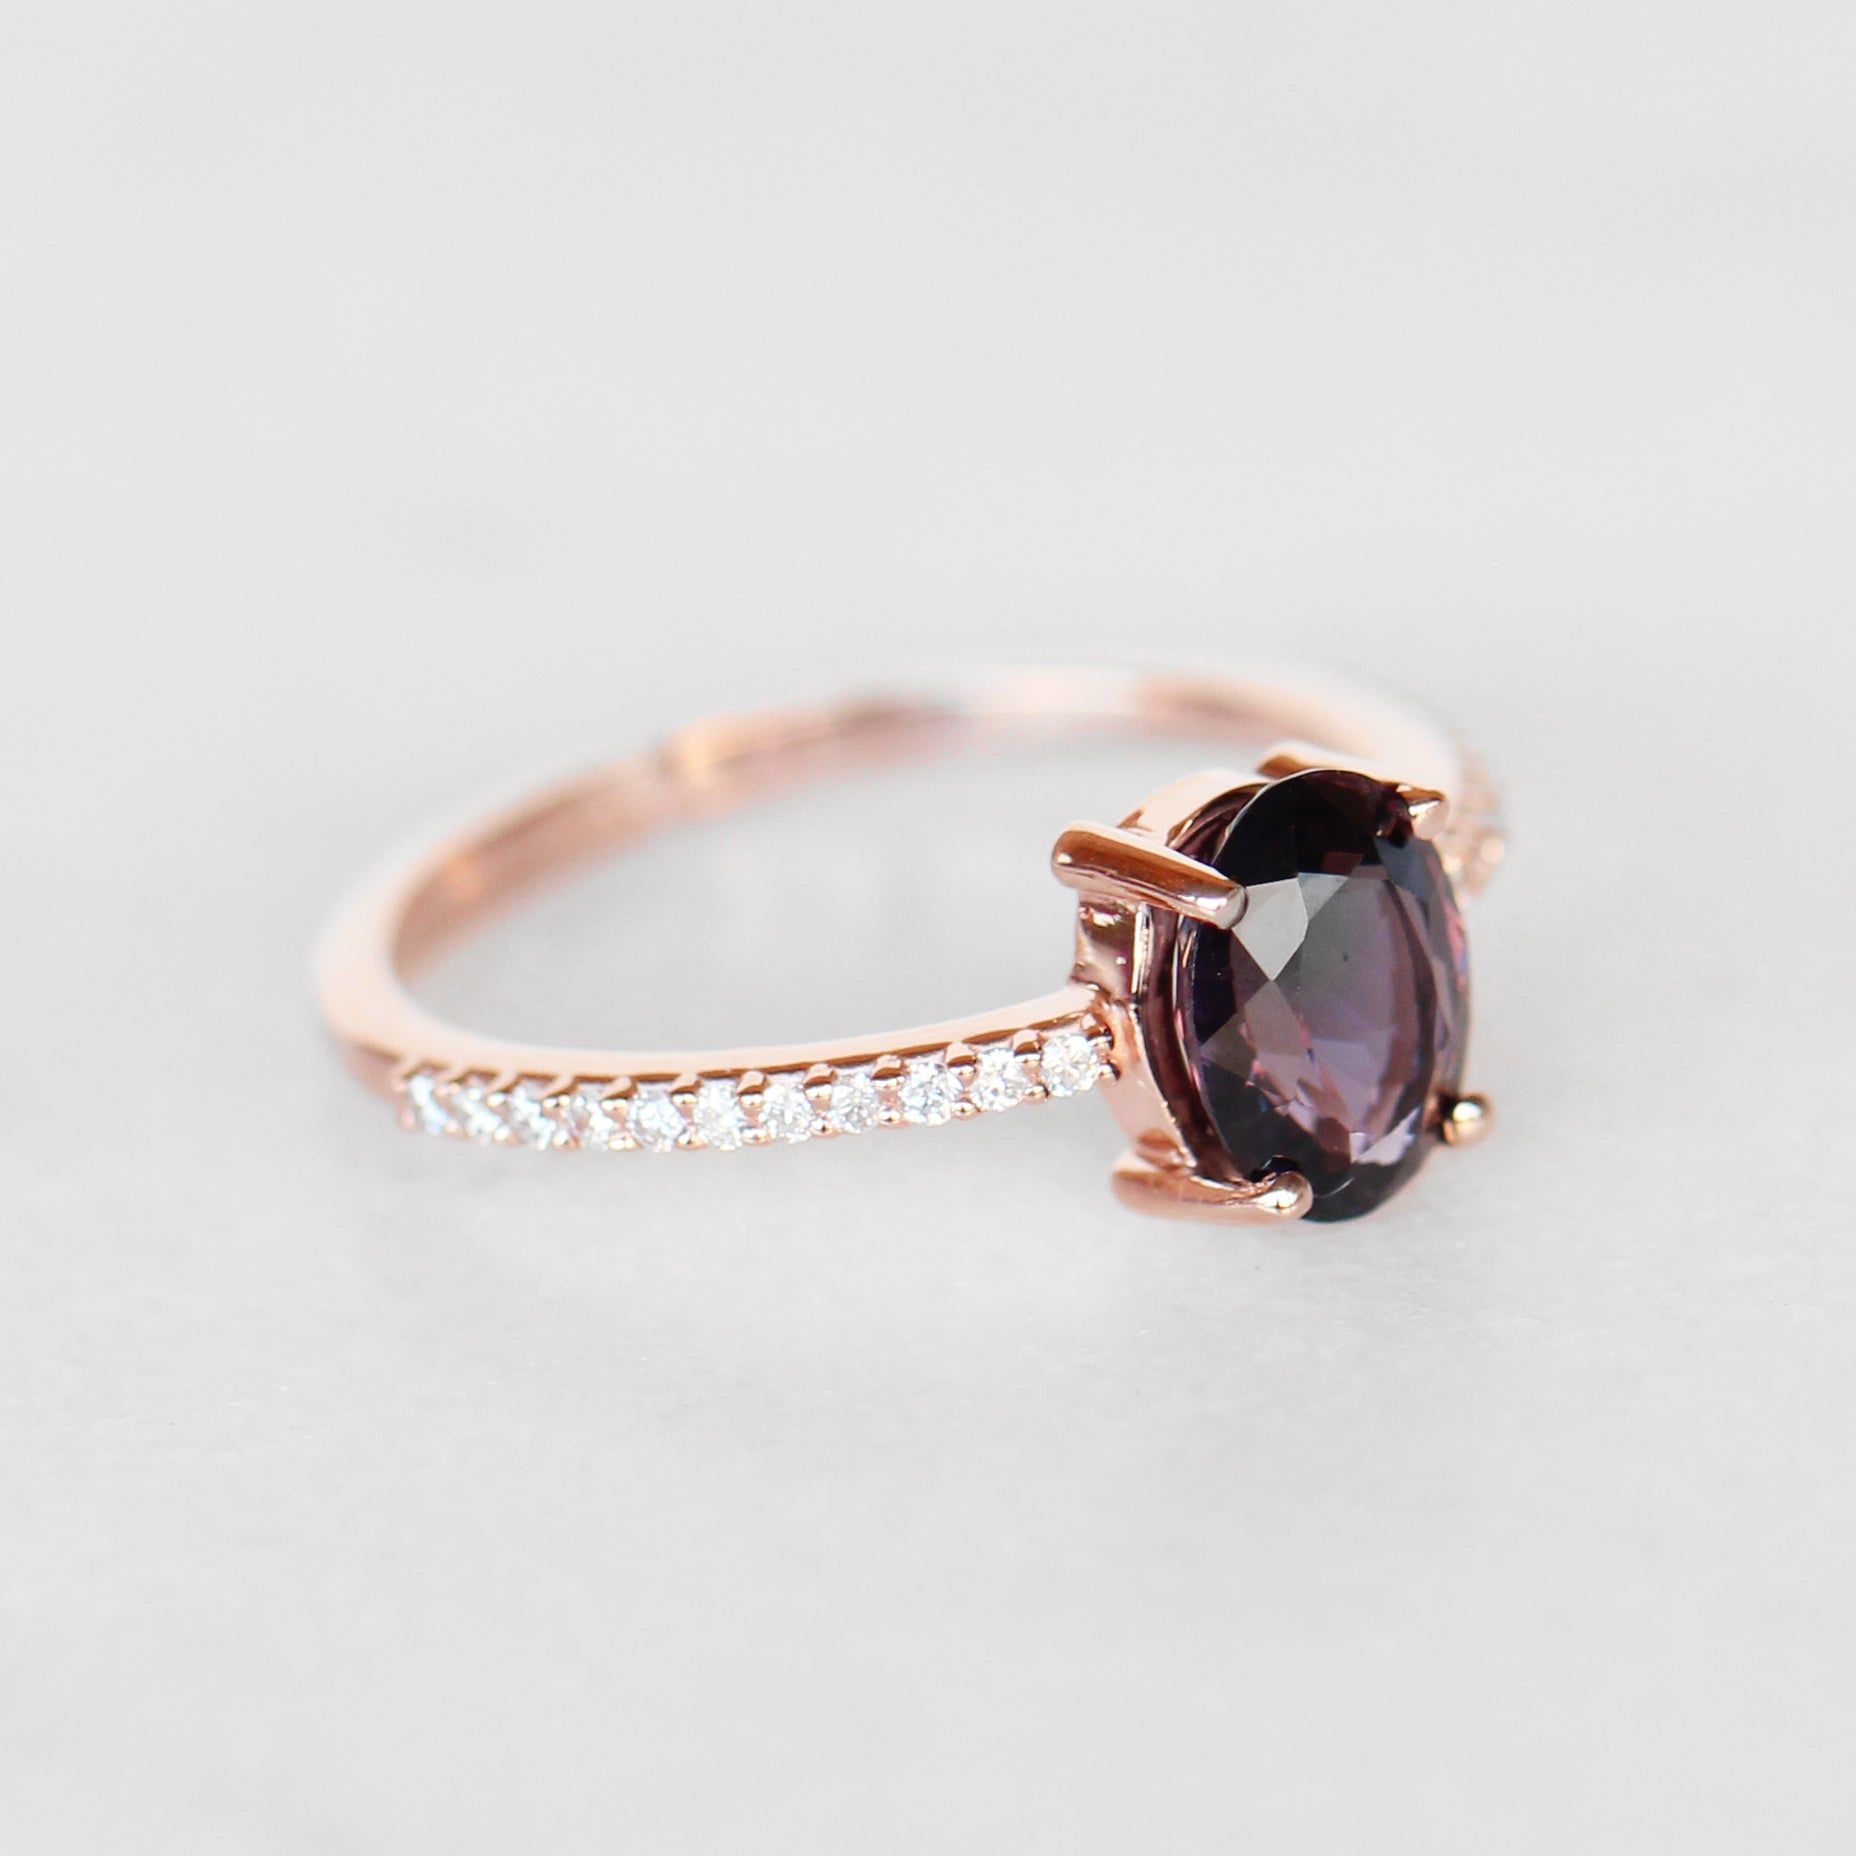 Mia Ring with 1.41 Carat Oval Gray Purple Spinel in 10k Rose Gold - Ready to Size and Ship - Celestial Diamonds ® by Midwinter Co.